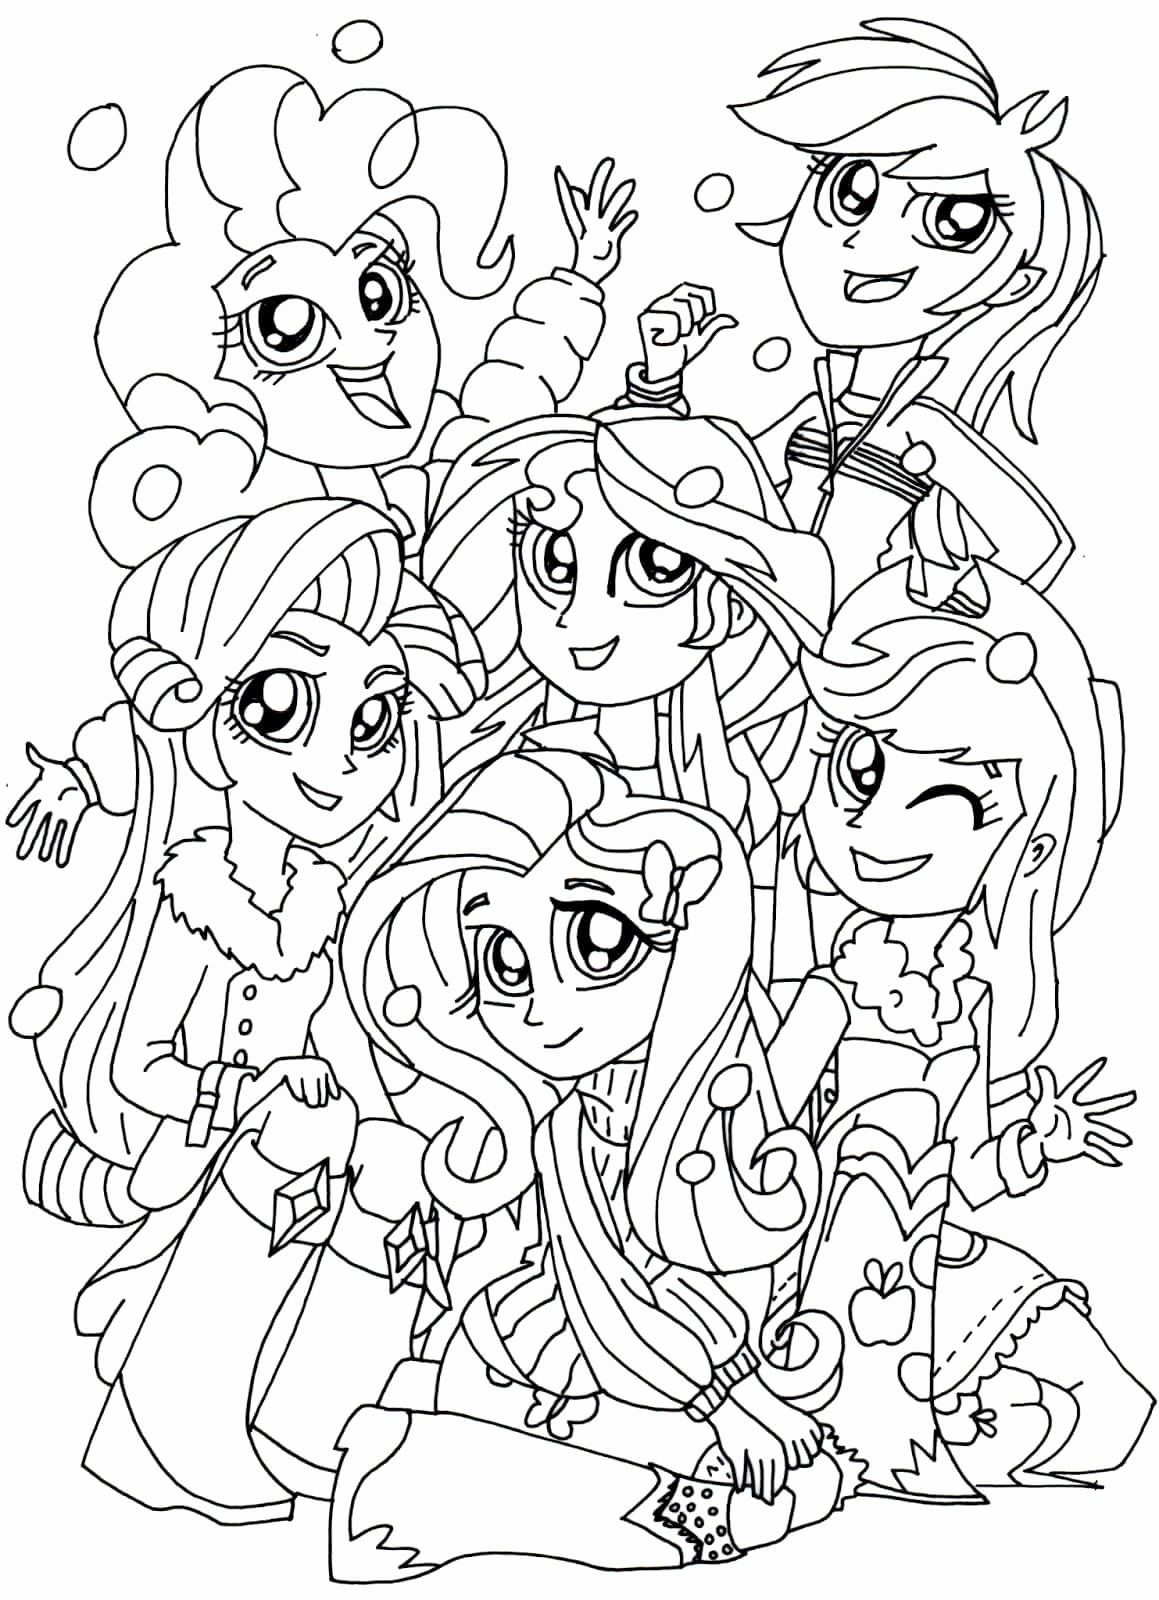 My Little Pony Coloring Book Awesome My Little Pony Equestria Girls Coloring Pages My Little Pony Coloring Chibi Coloring Pages Coloring Pages For Girls